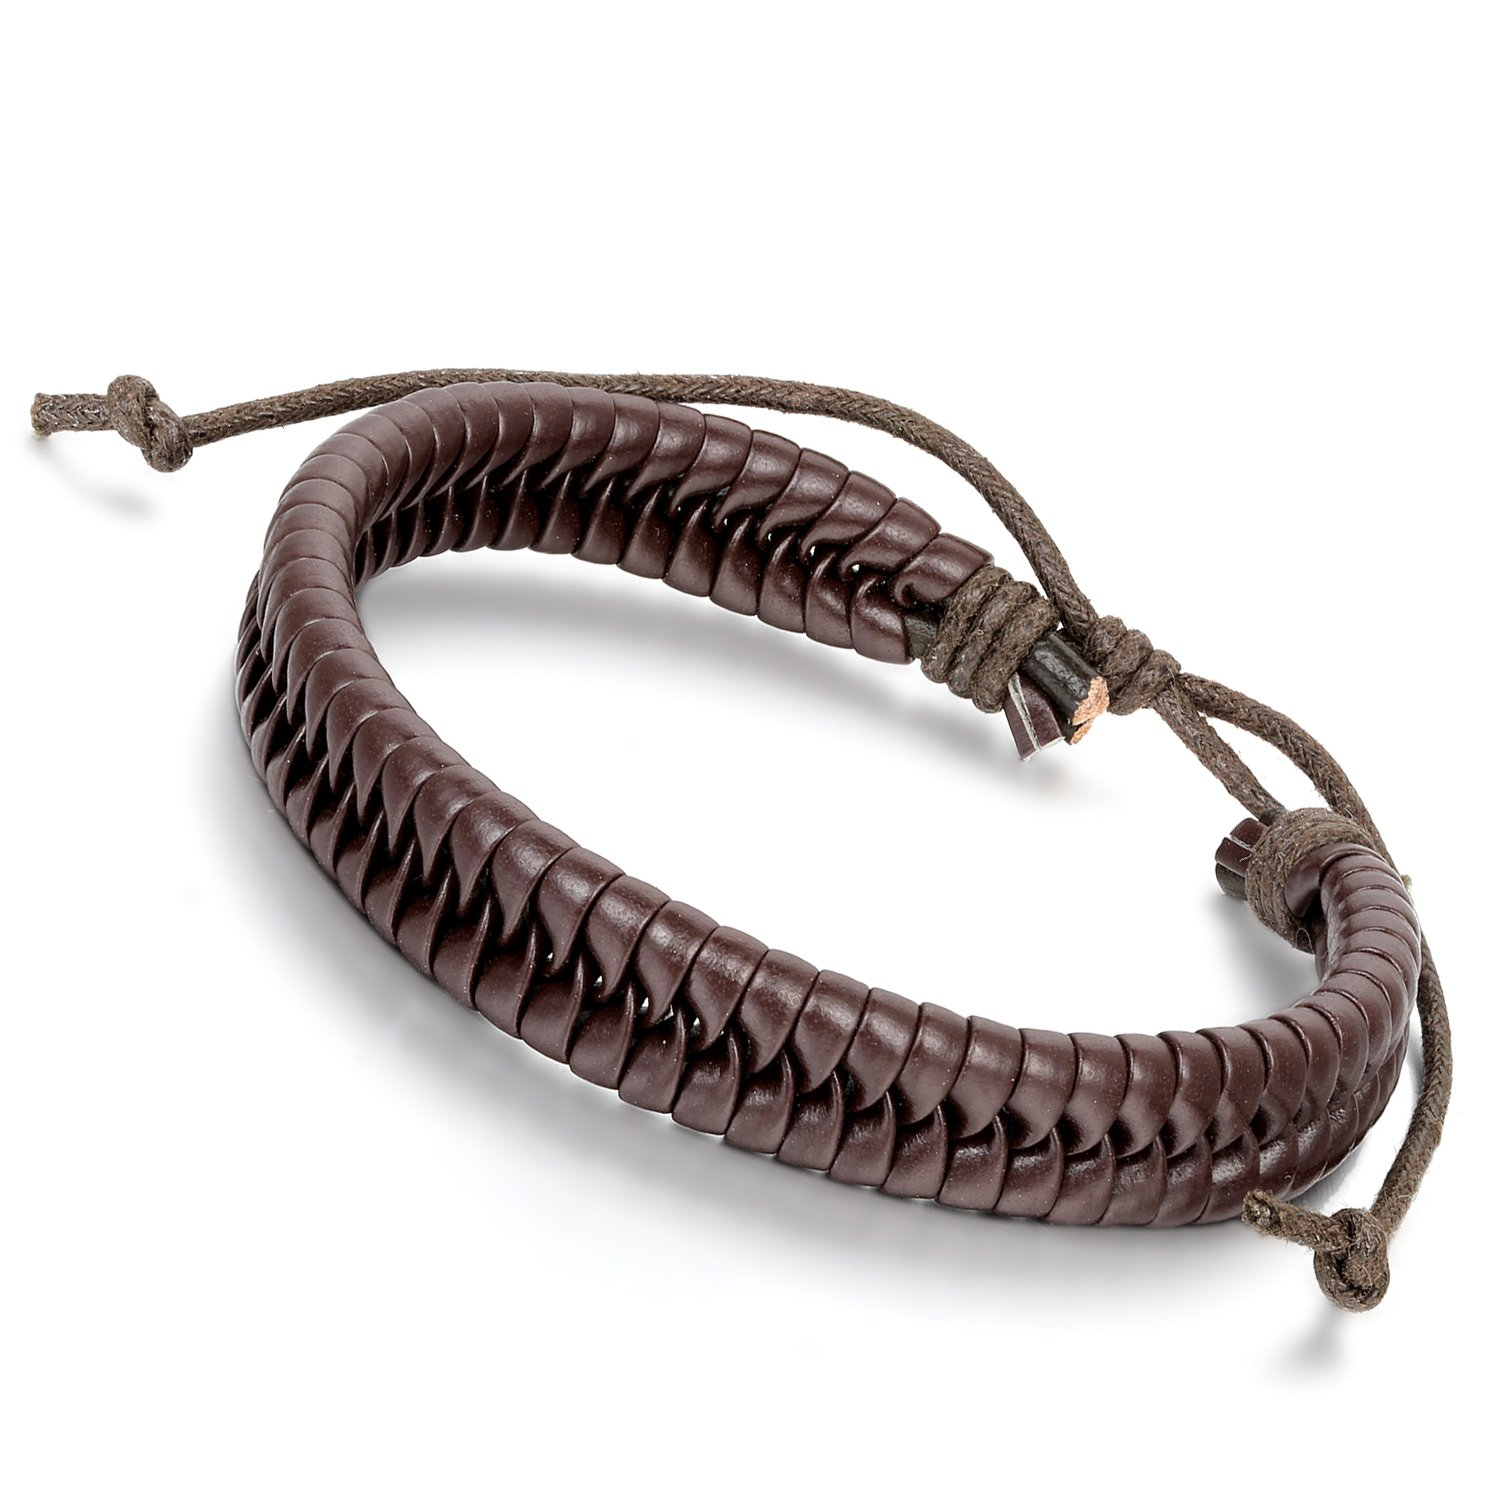 Flongo Men's Womens Adjustable Brown Surfer Leather Braided Link Bracelet, Fit 7-10.5 Inch Wrist